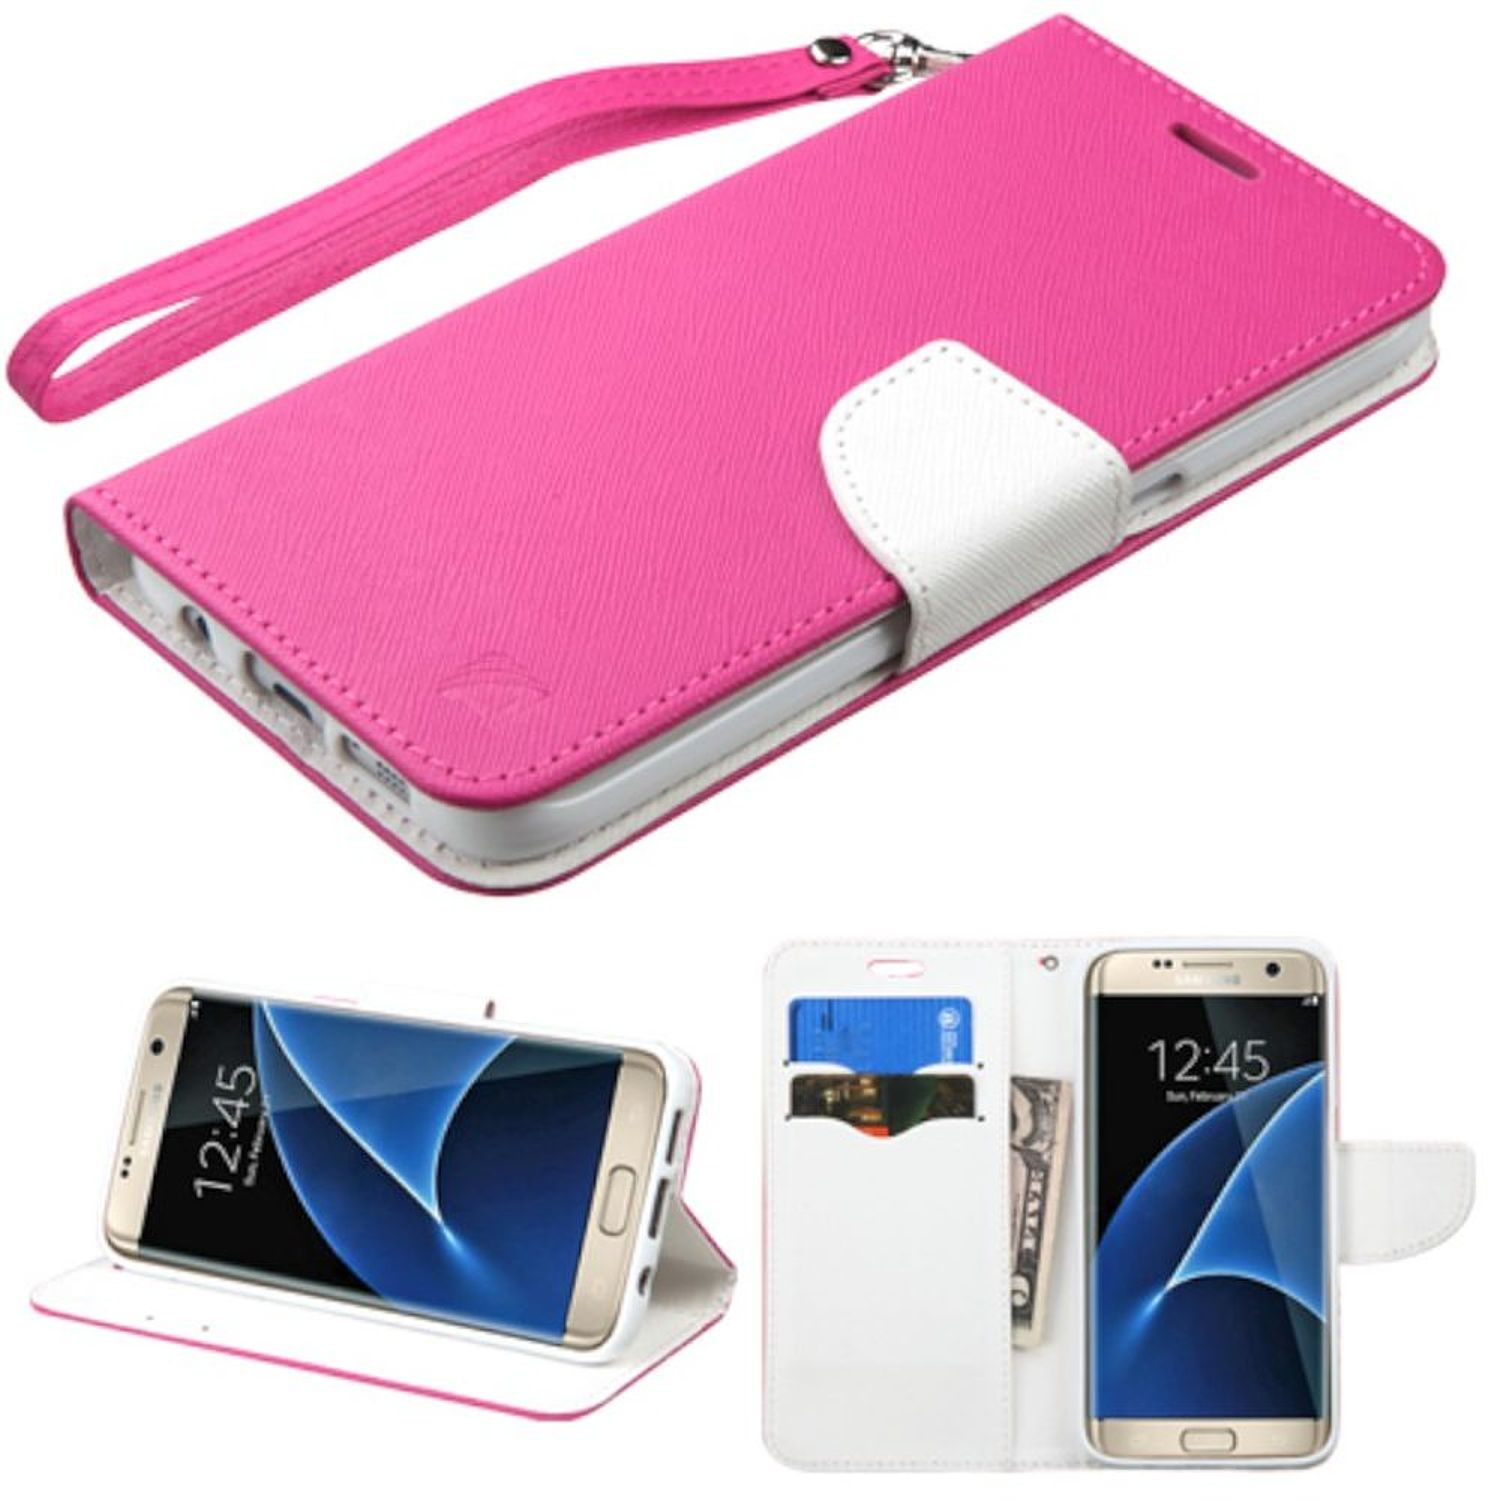 Insten Folio Leather Wallet Fabric Case with Lanyard For Samsung Galaxy S7 Edge - Hot Pink/White